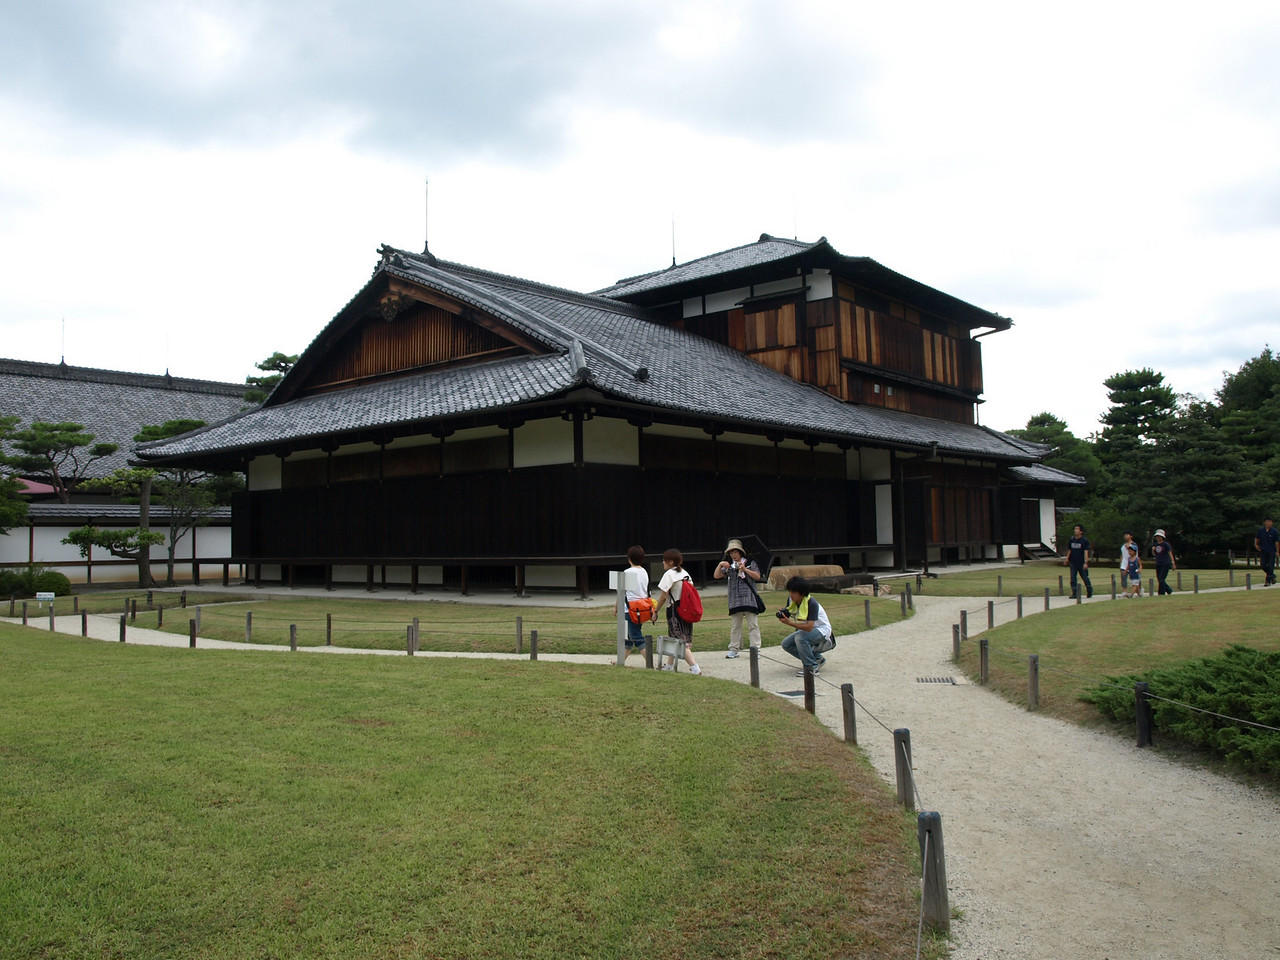 A different view of the Otsune Palace which was home to Emperor Komei's daughter, princess Kazunomiya, the last Lady of the Katsura line of the Imperial family.